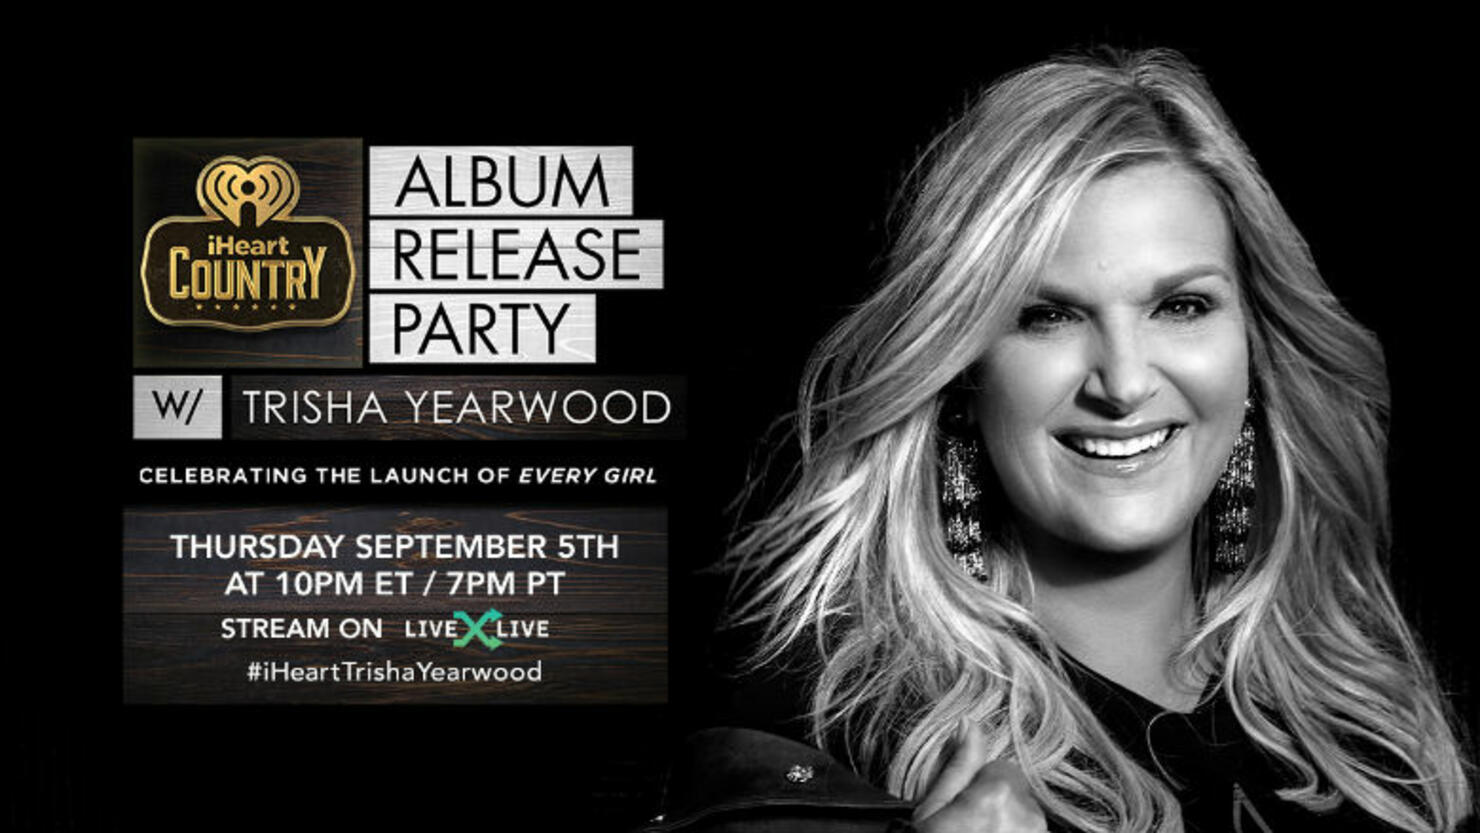 Trisha Yearwood iHeartCountry Album Release Party